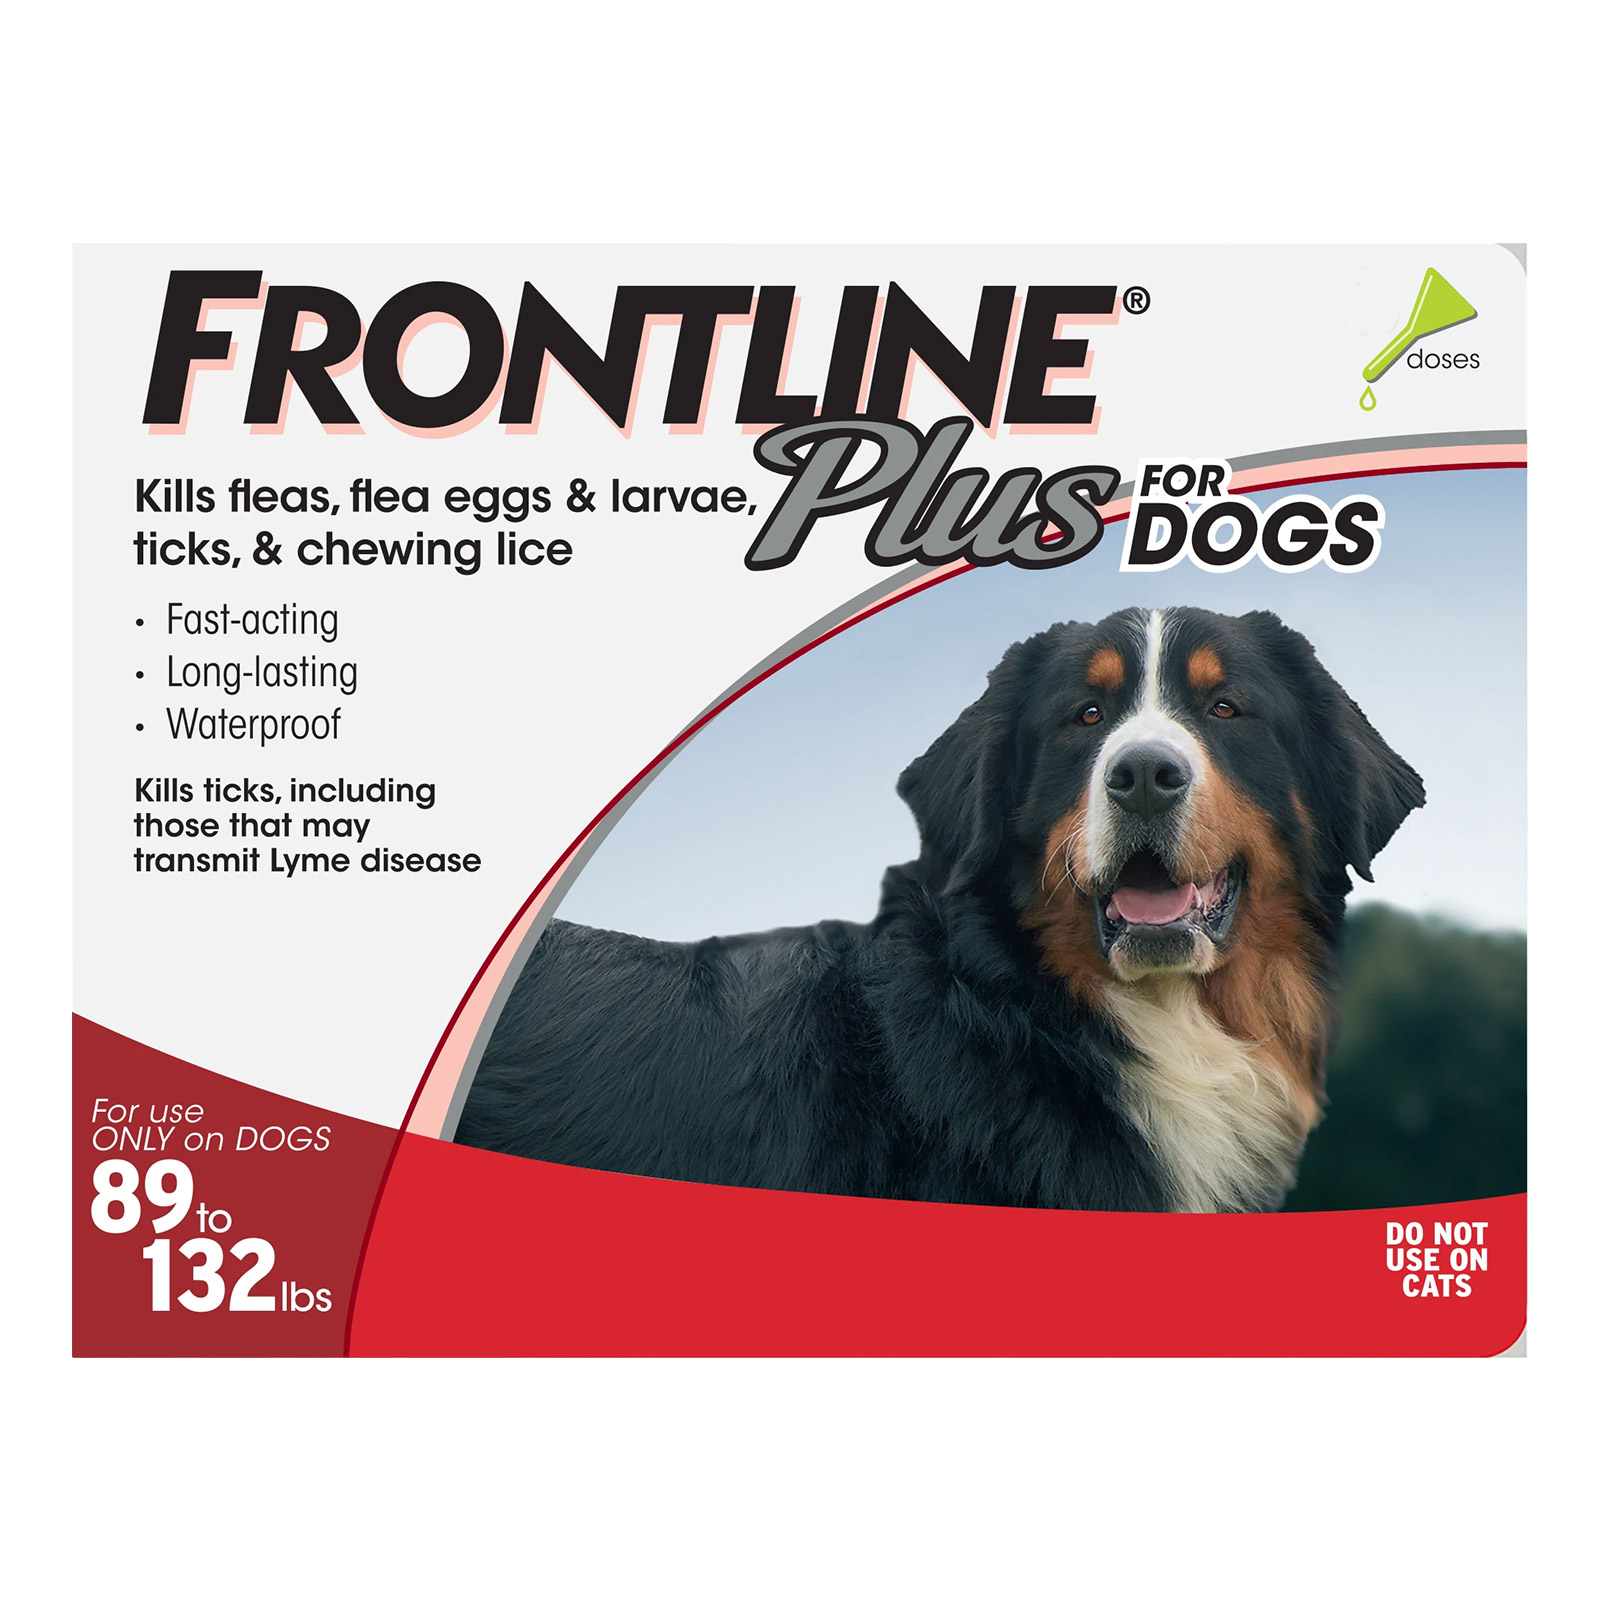 Frontline Plus for Extra Large Dogs over 89 lbs (Red) 12 MONTHS